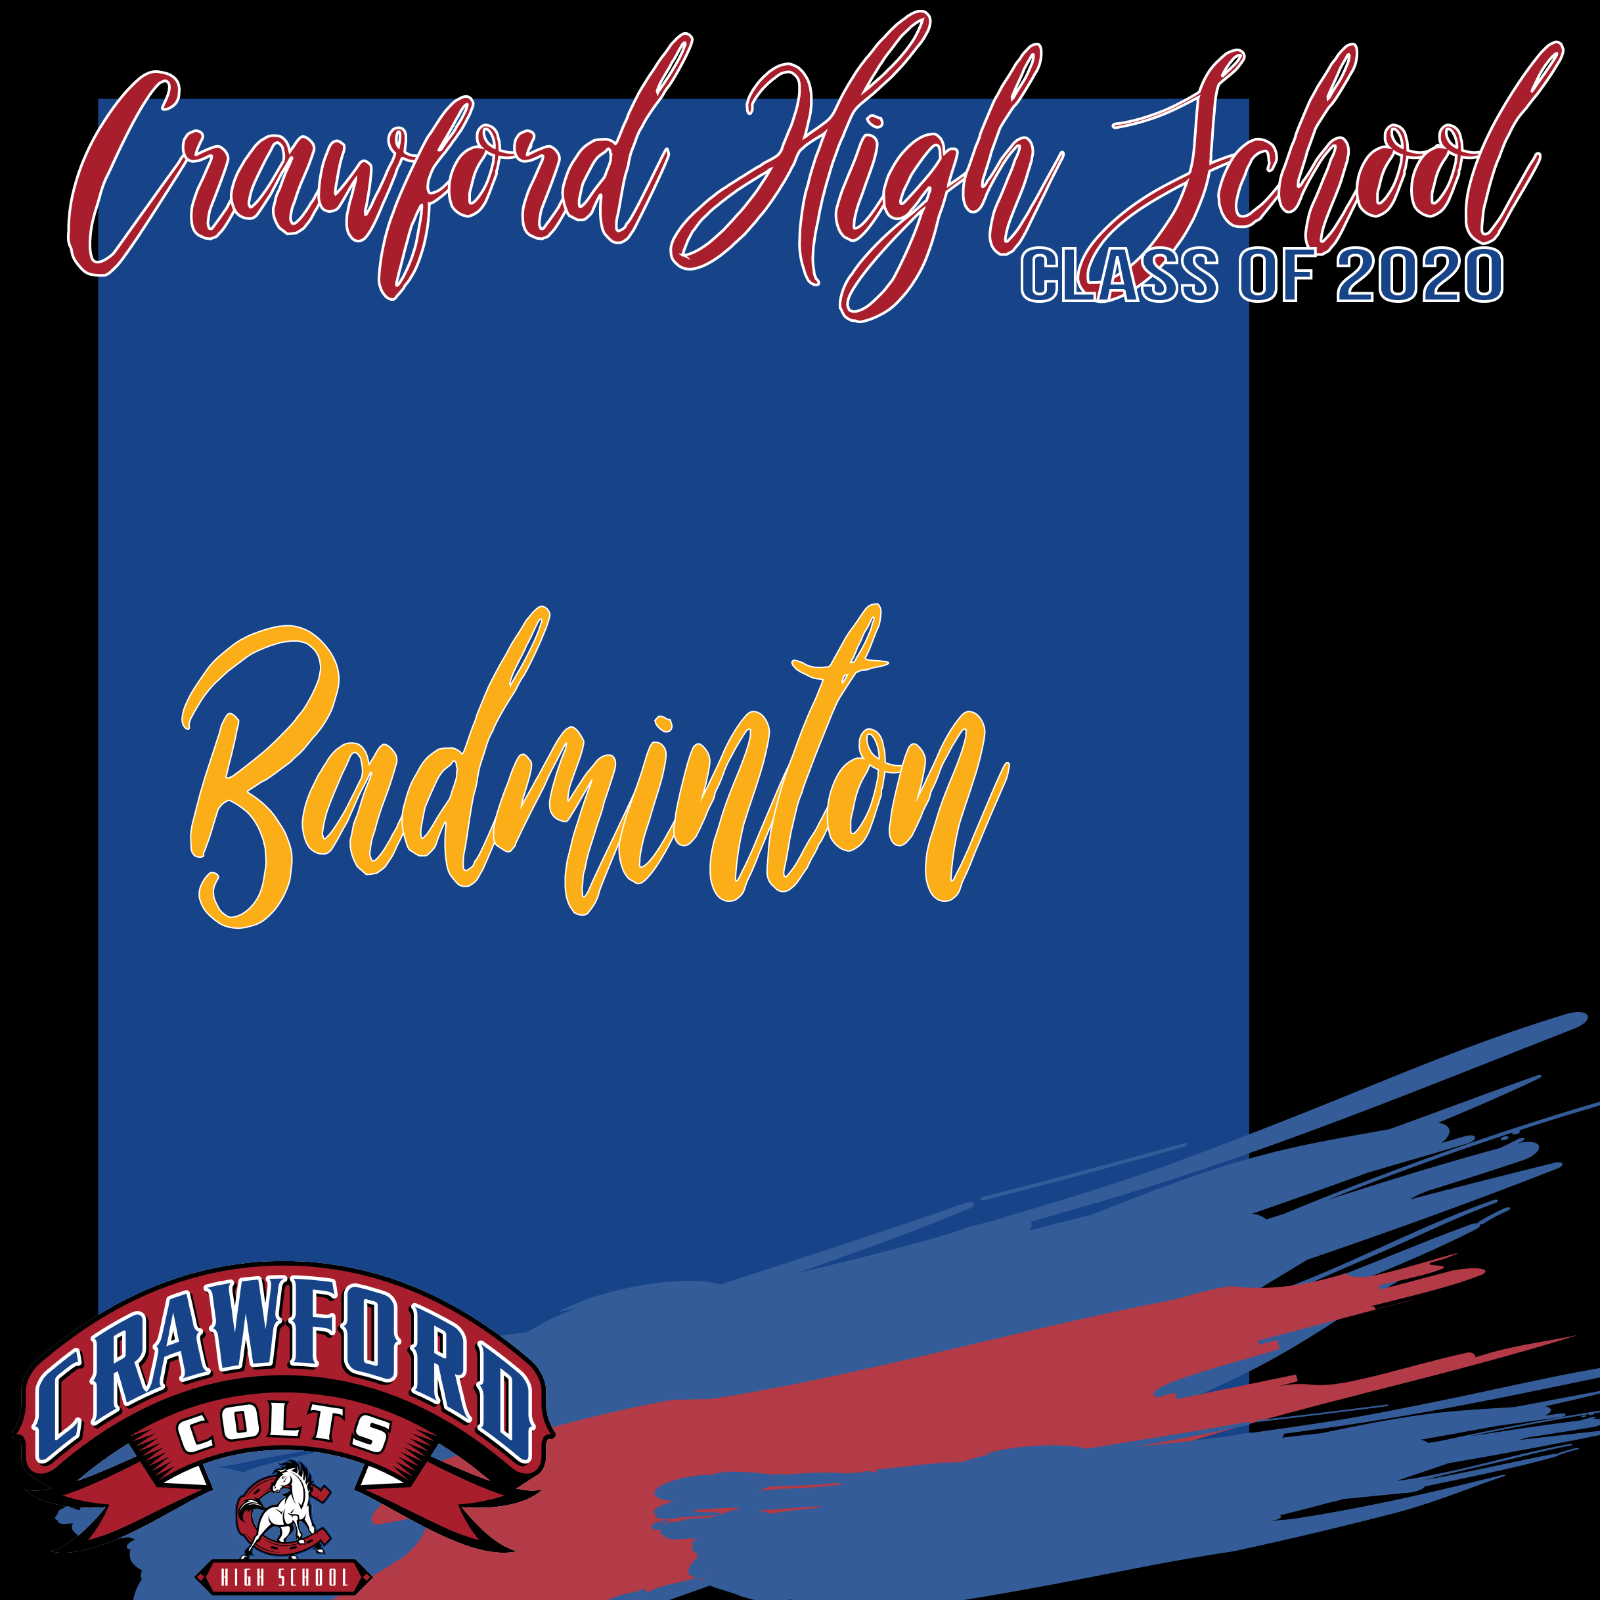 Celebrating Class of 2020-Badminton